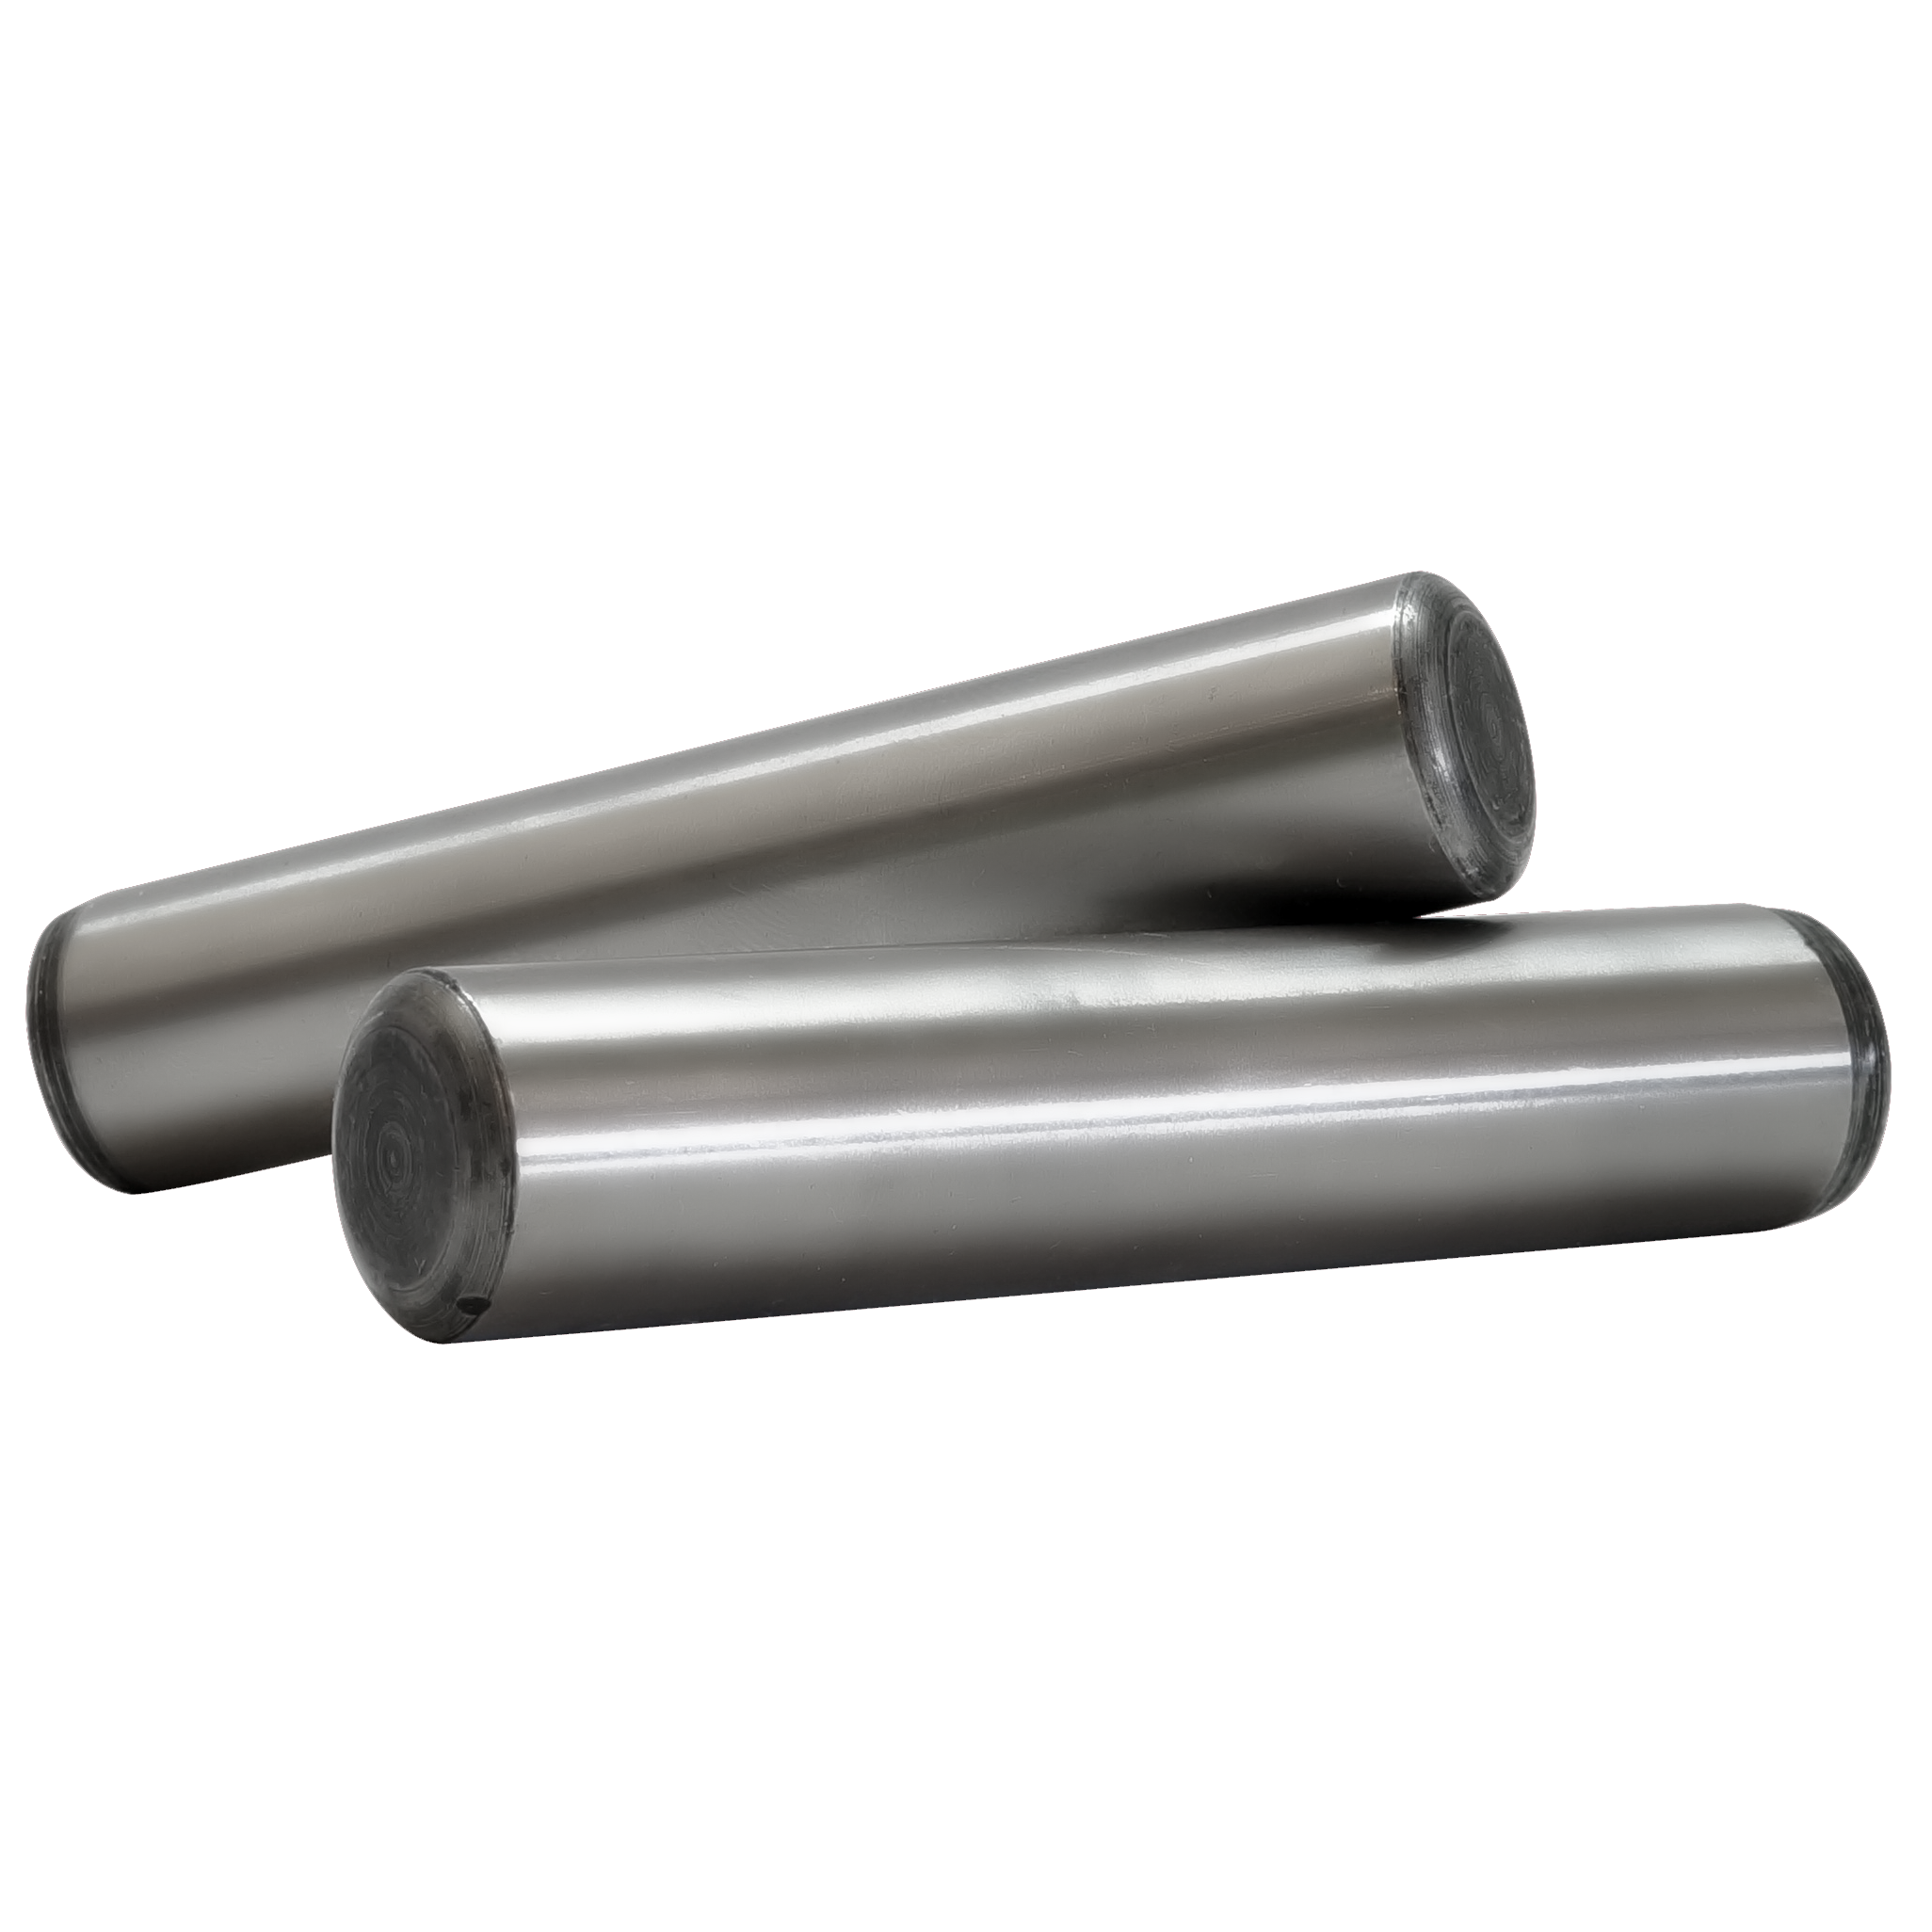 "M2x16 DIN 6325 Alloy Steel Dowel Pin Hardened Ground 0.0002"" Over Sized  (Unbrako)"